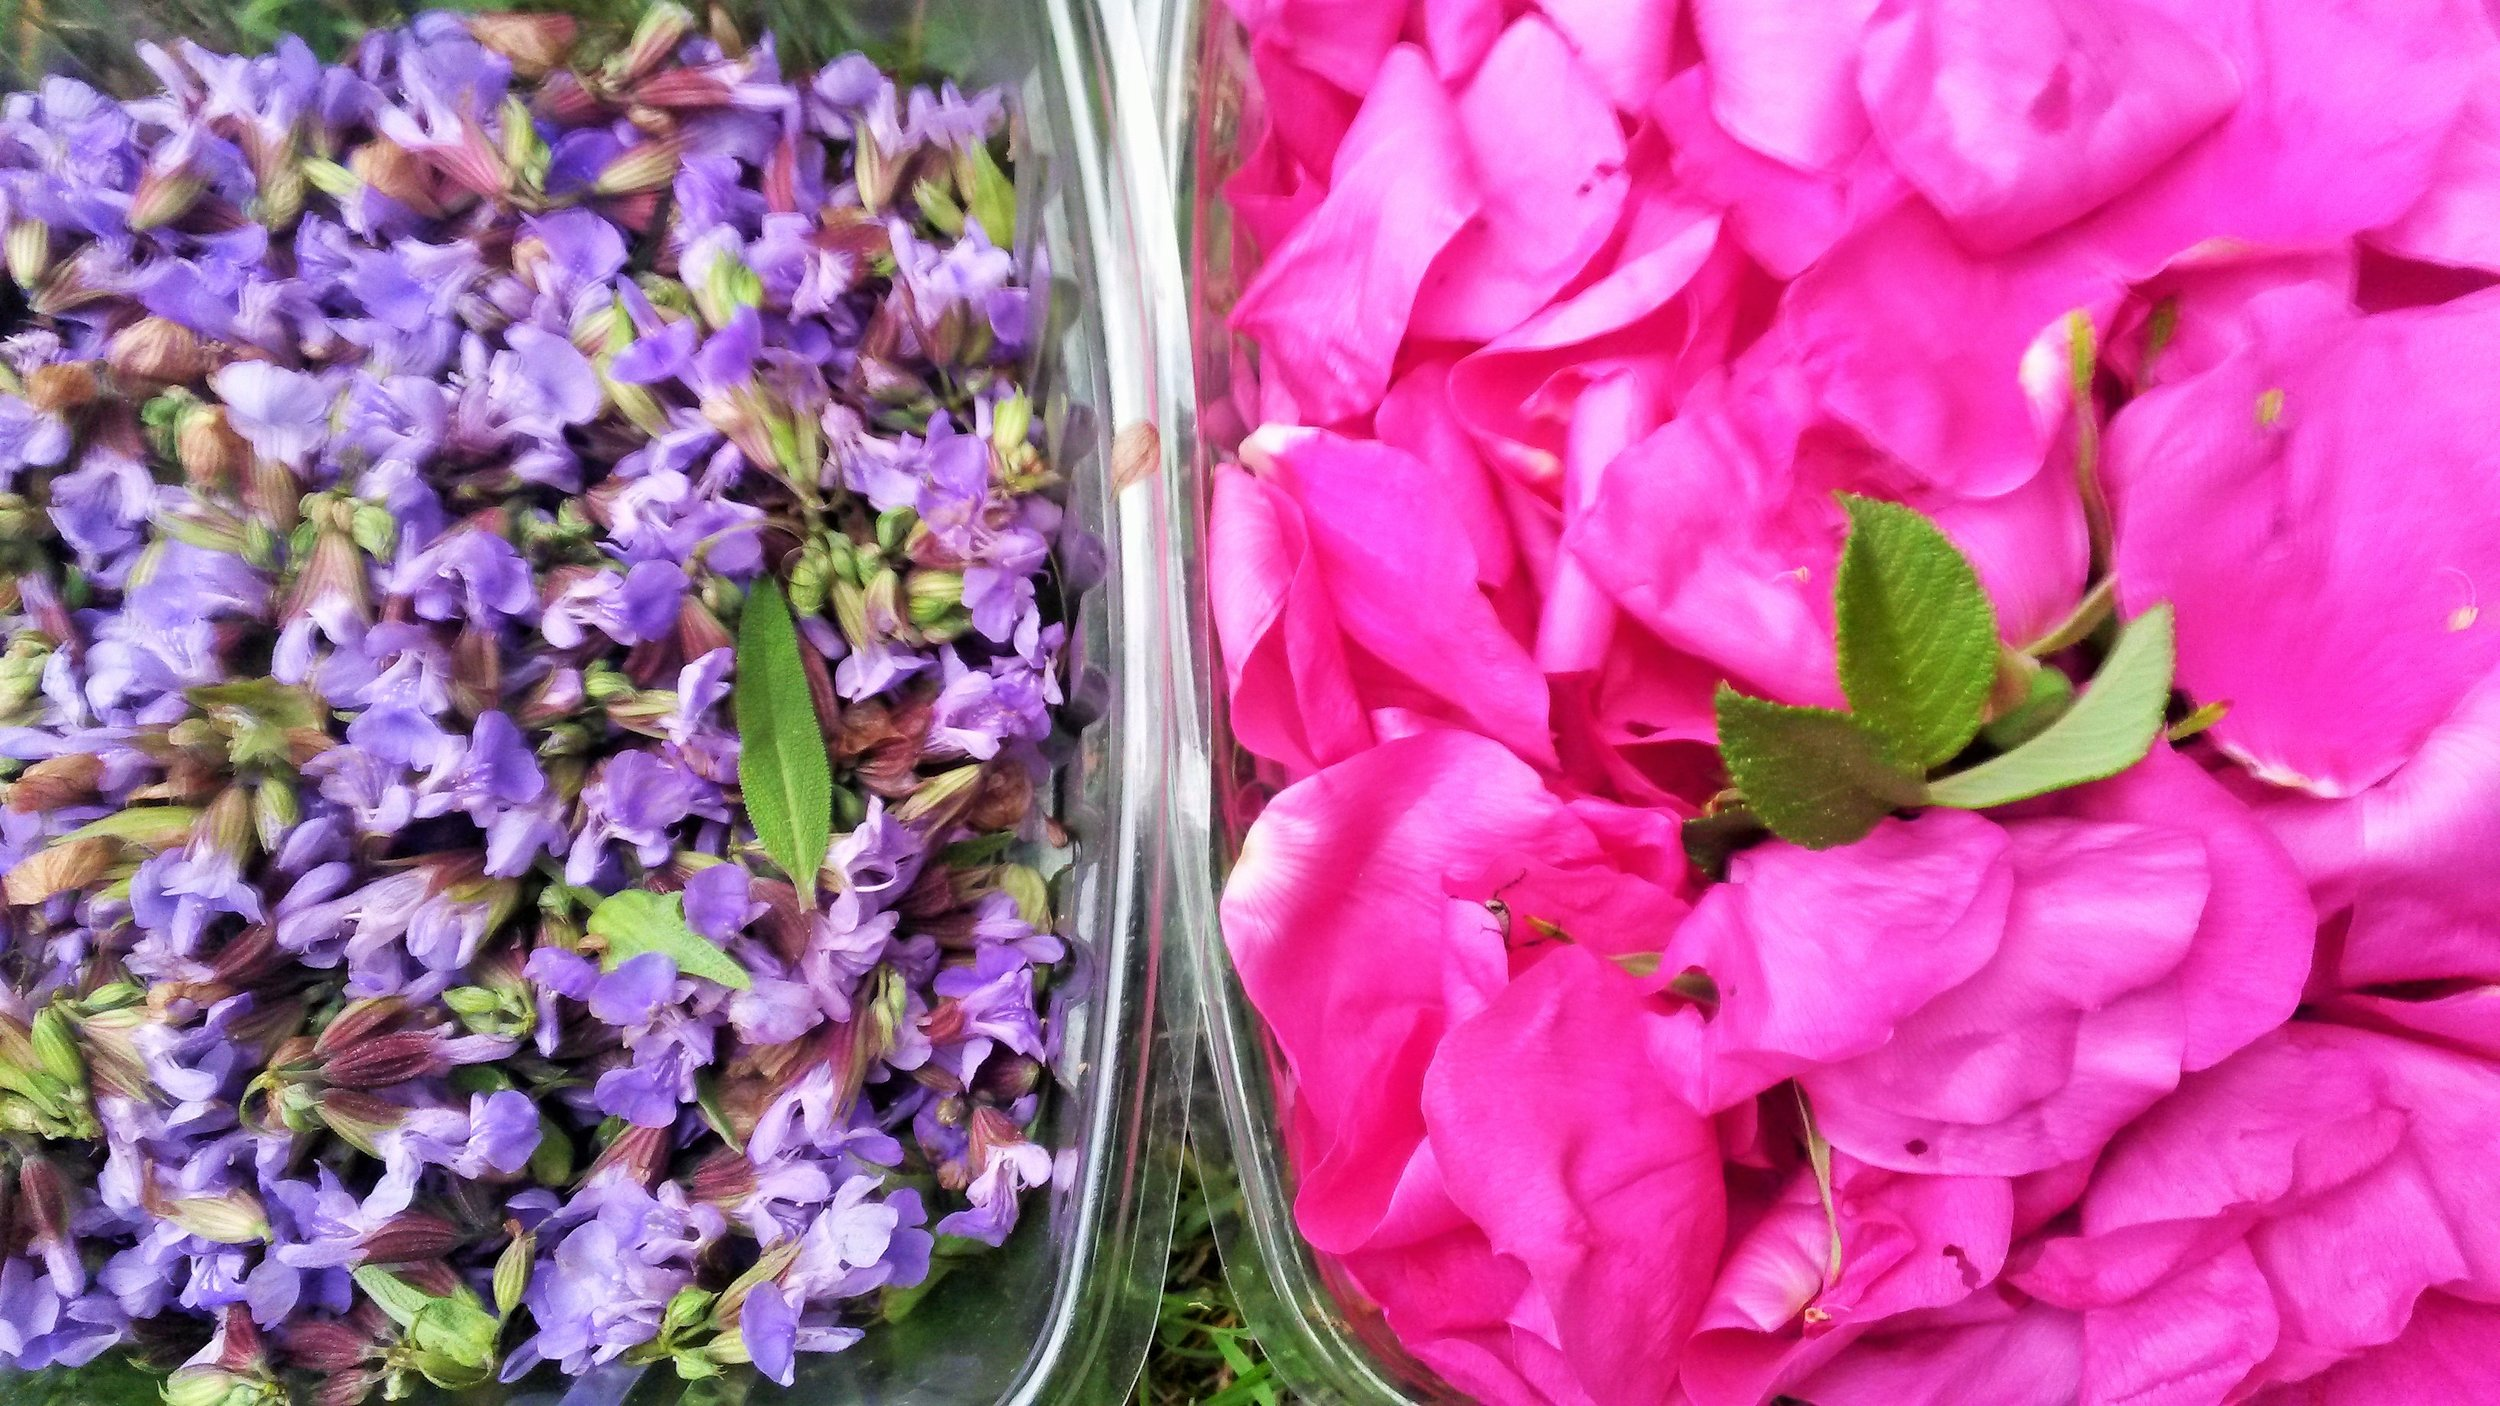 Mint Flowers and Rose Pedals to be used in simple syrups~